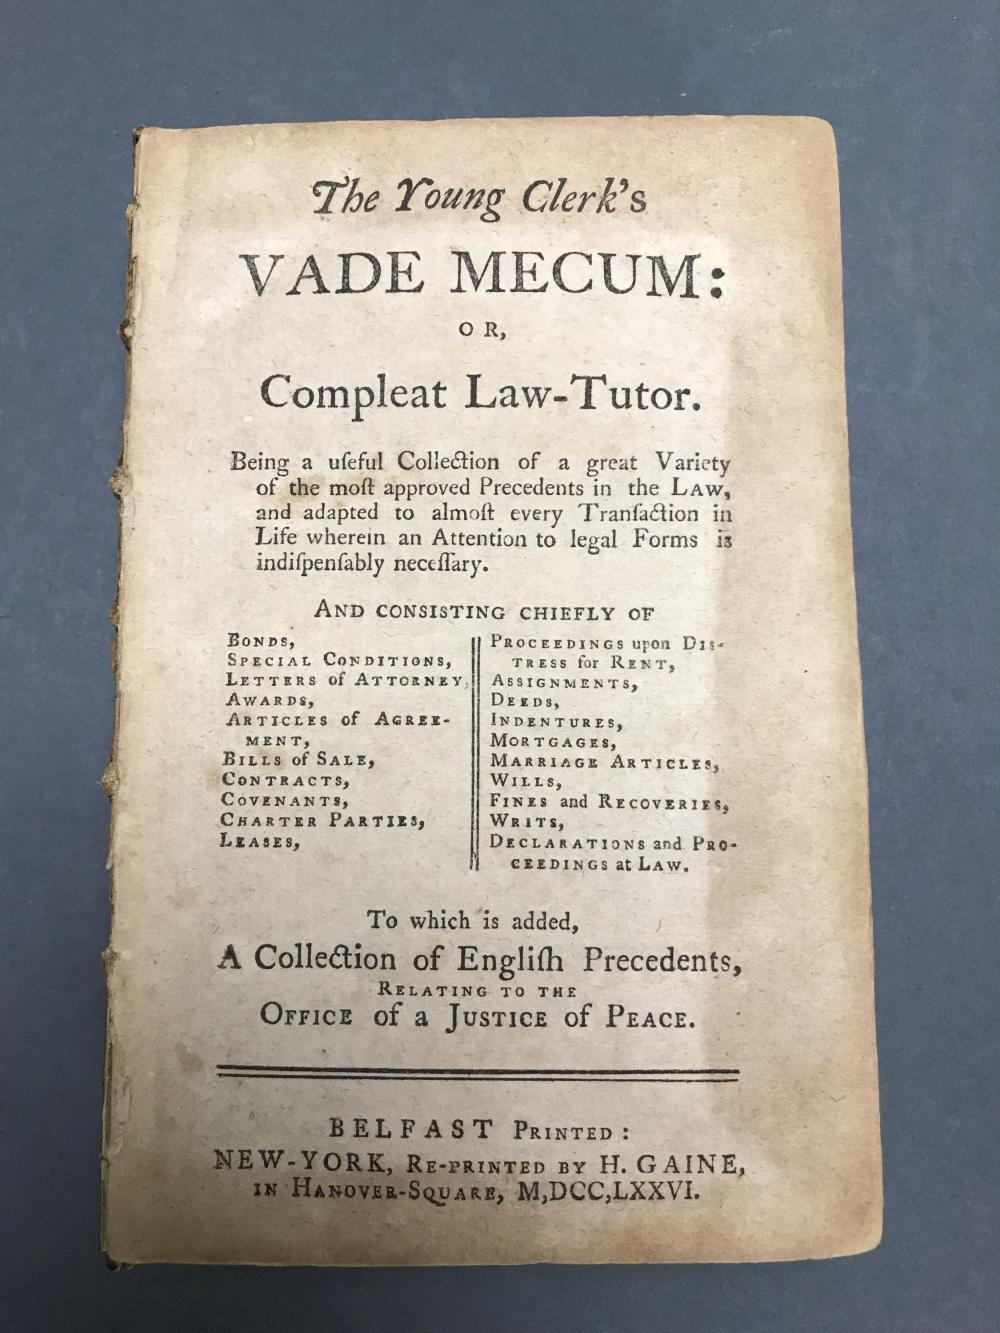 Lot 183: The Young Clerk's Vade Mecum. 1776.